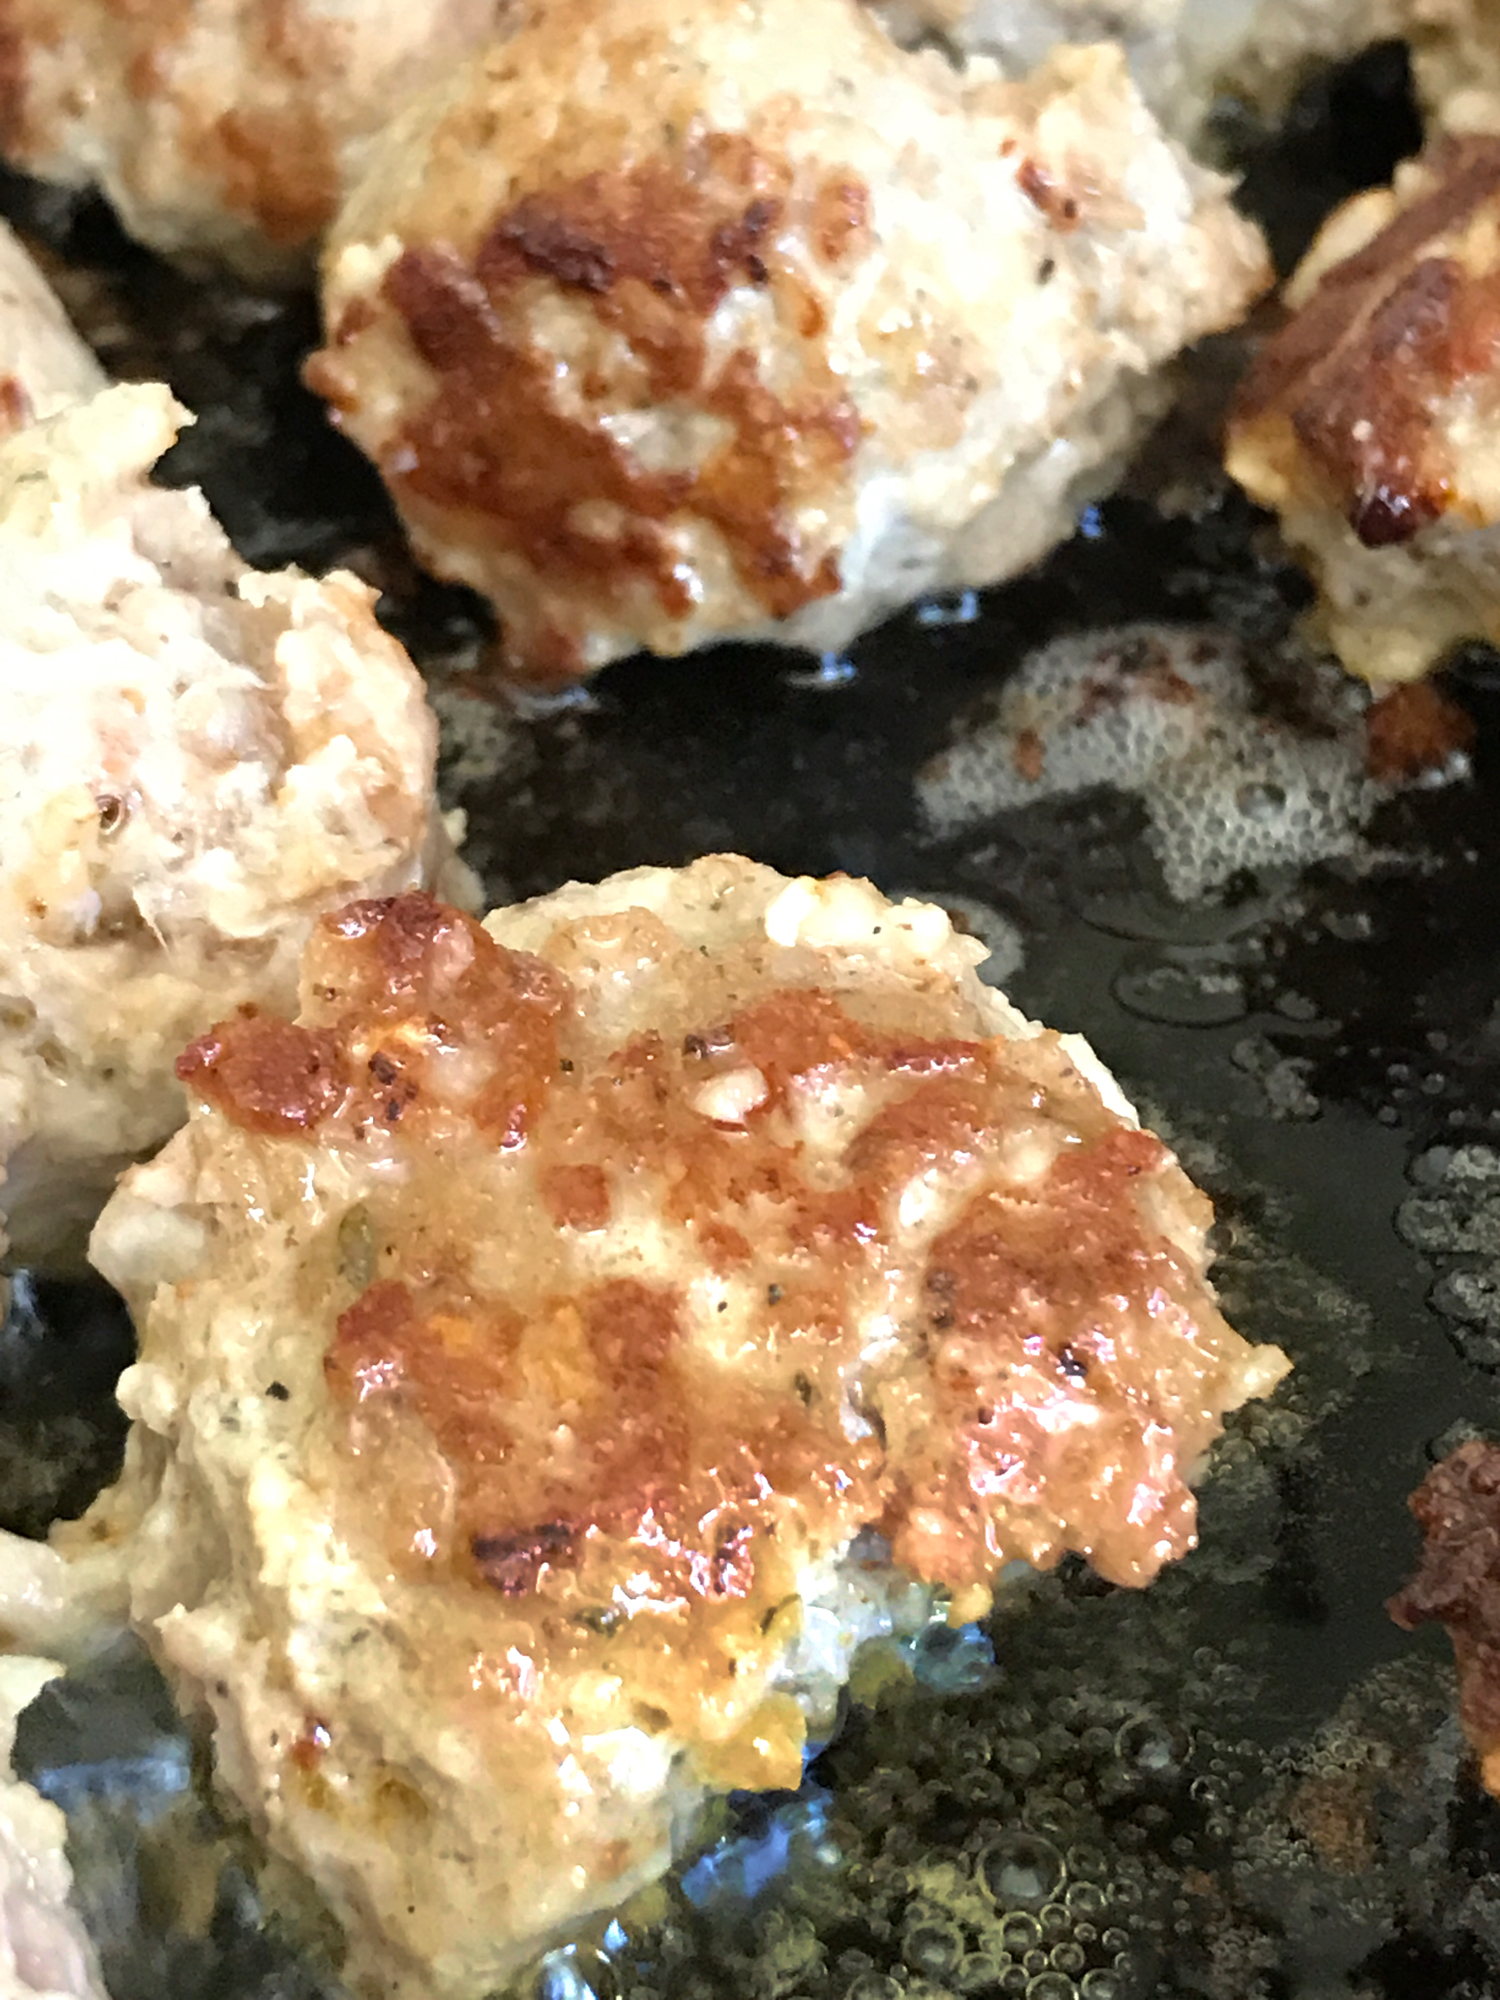 Brown Slowly - One of the successes of this dish is the slow and even browning of the meatballs in a little rendered bacon fat. Brown evenly, turning after each side reaches a golden color.